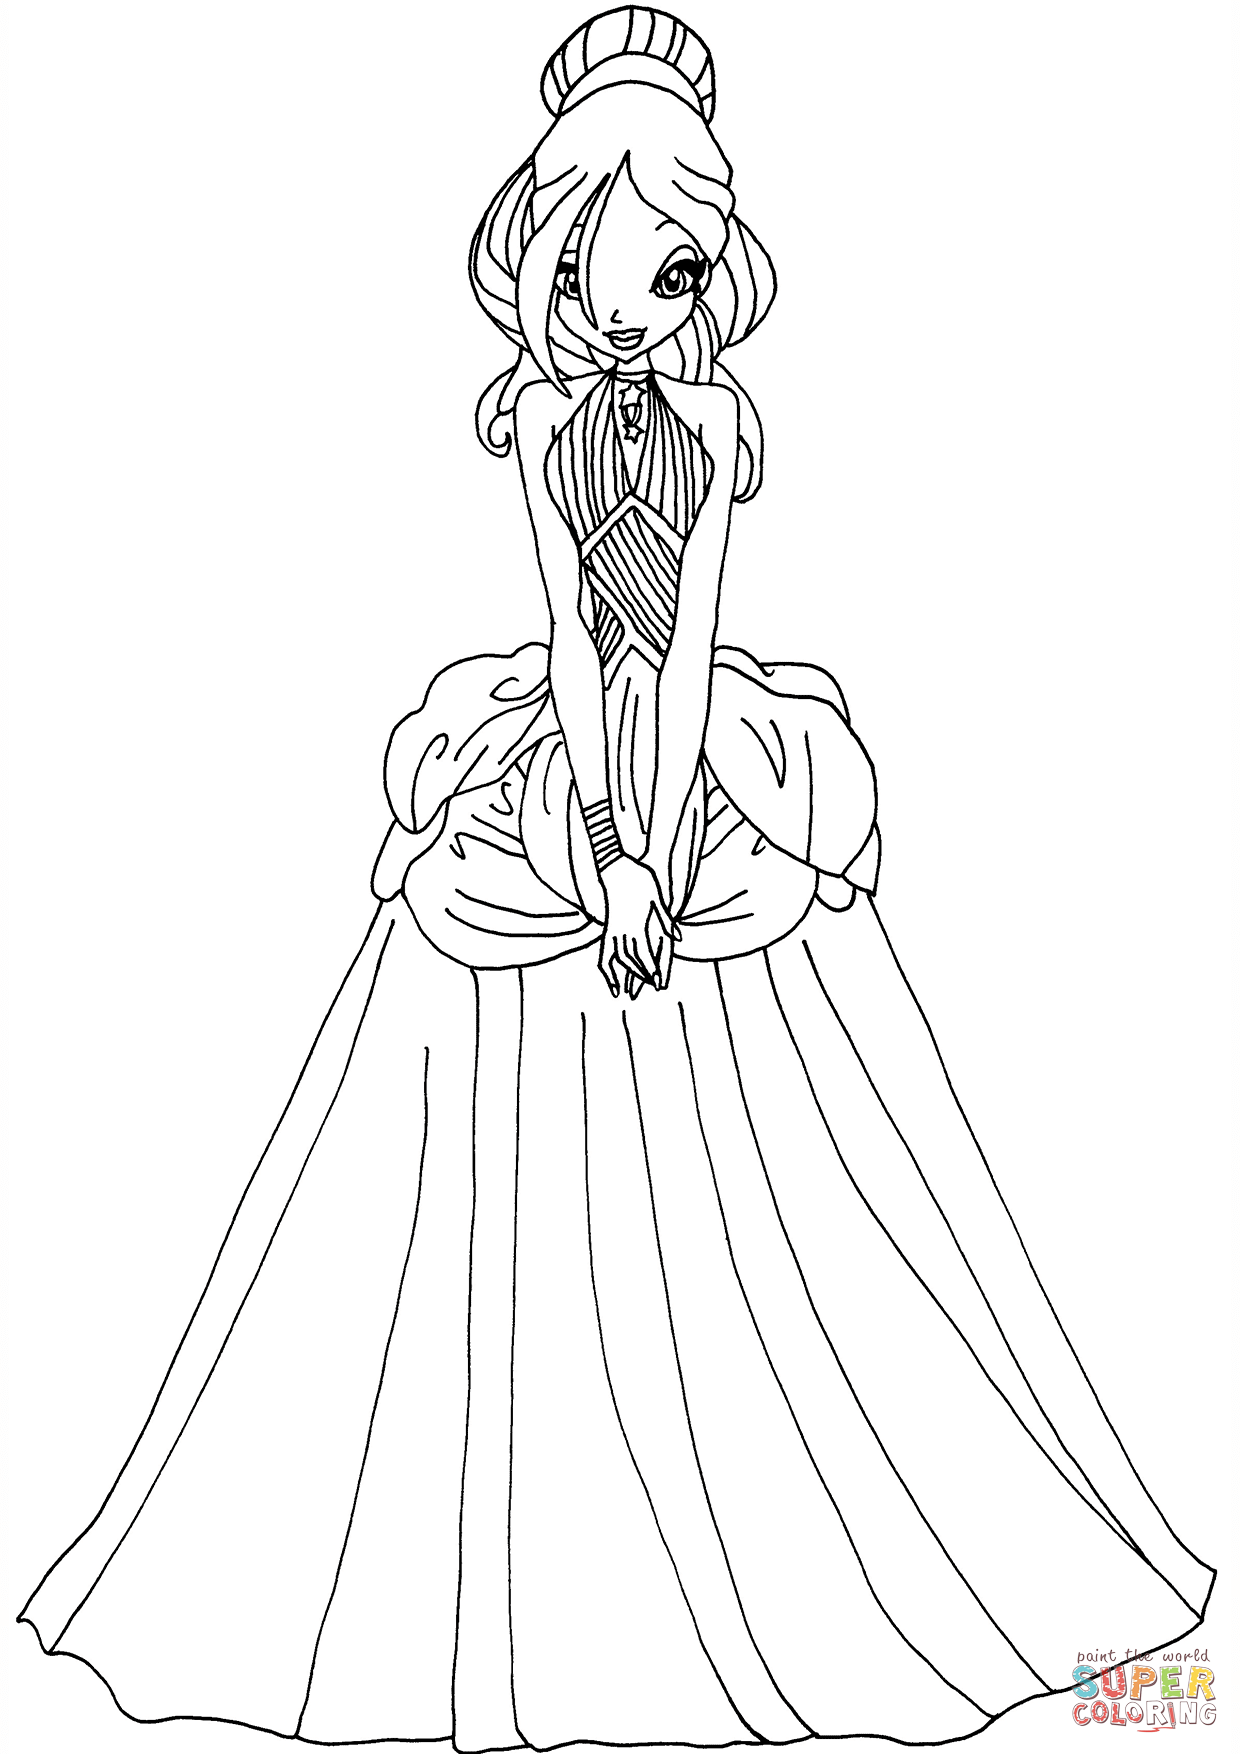 Printable Dresses Coloring Pages At Getcolorings